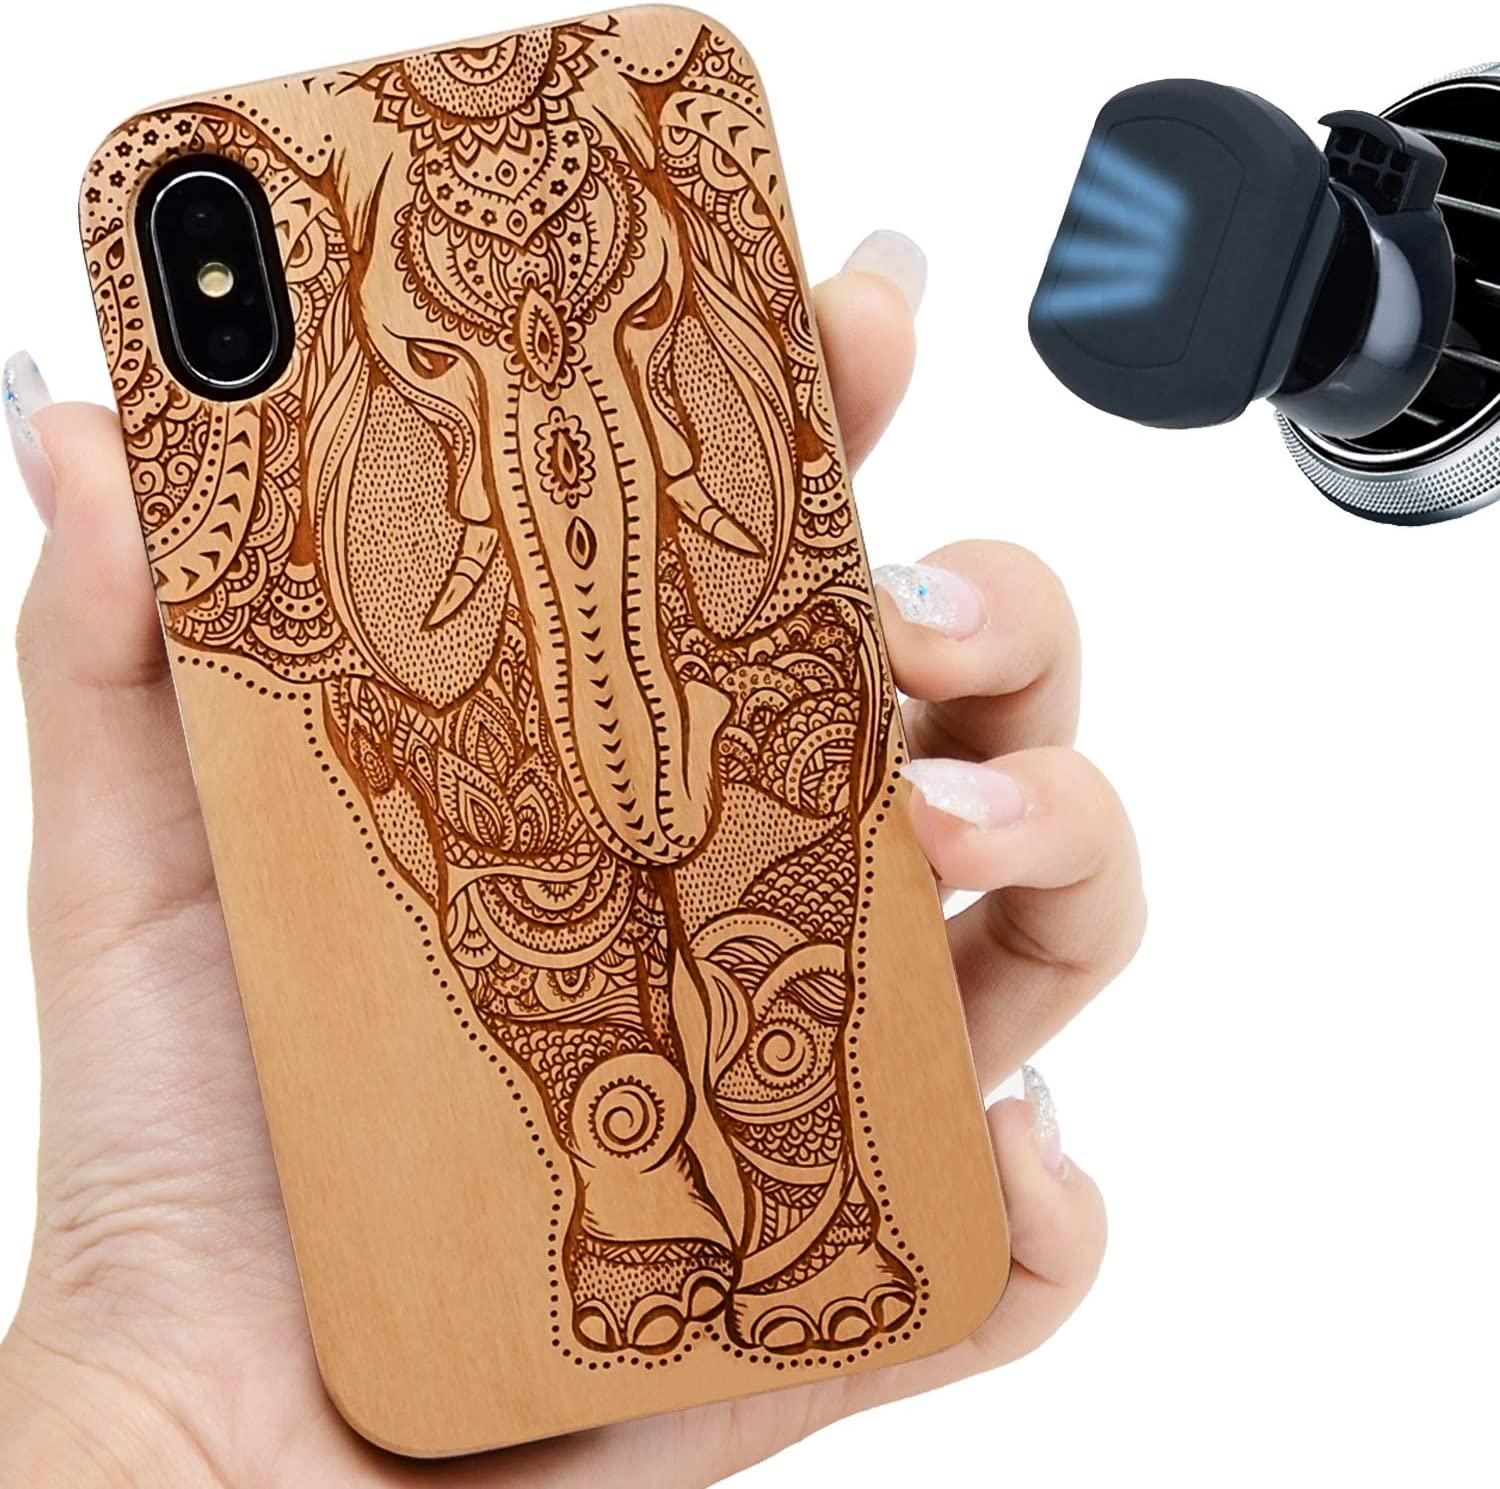 "iProductsUS Elephant Wood Phone Case Compatible with iPhone Xs, X (10) and Magnetic Mount, Engraved in USA, Built-in Metal Plate, TPU Protective Shockproof Cover (5.8"")"